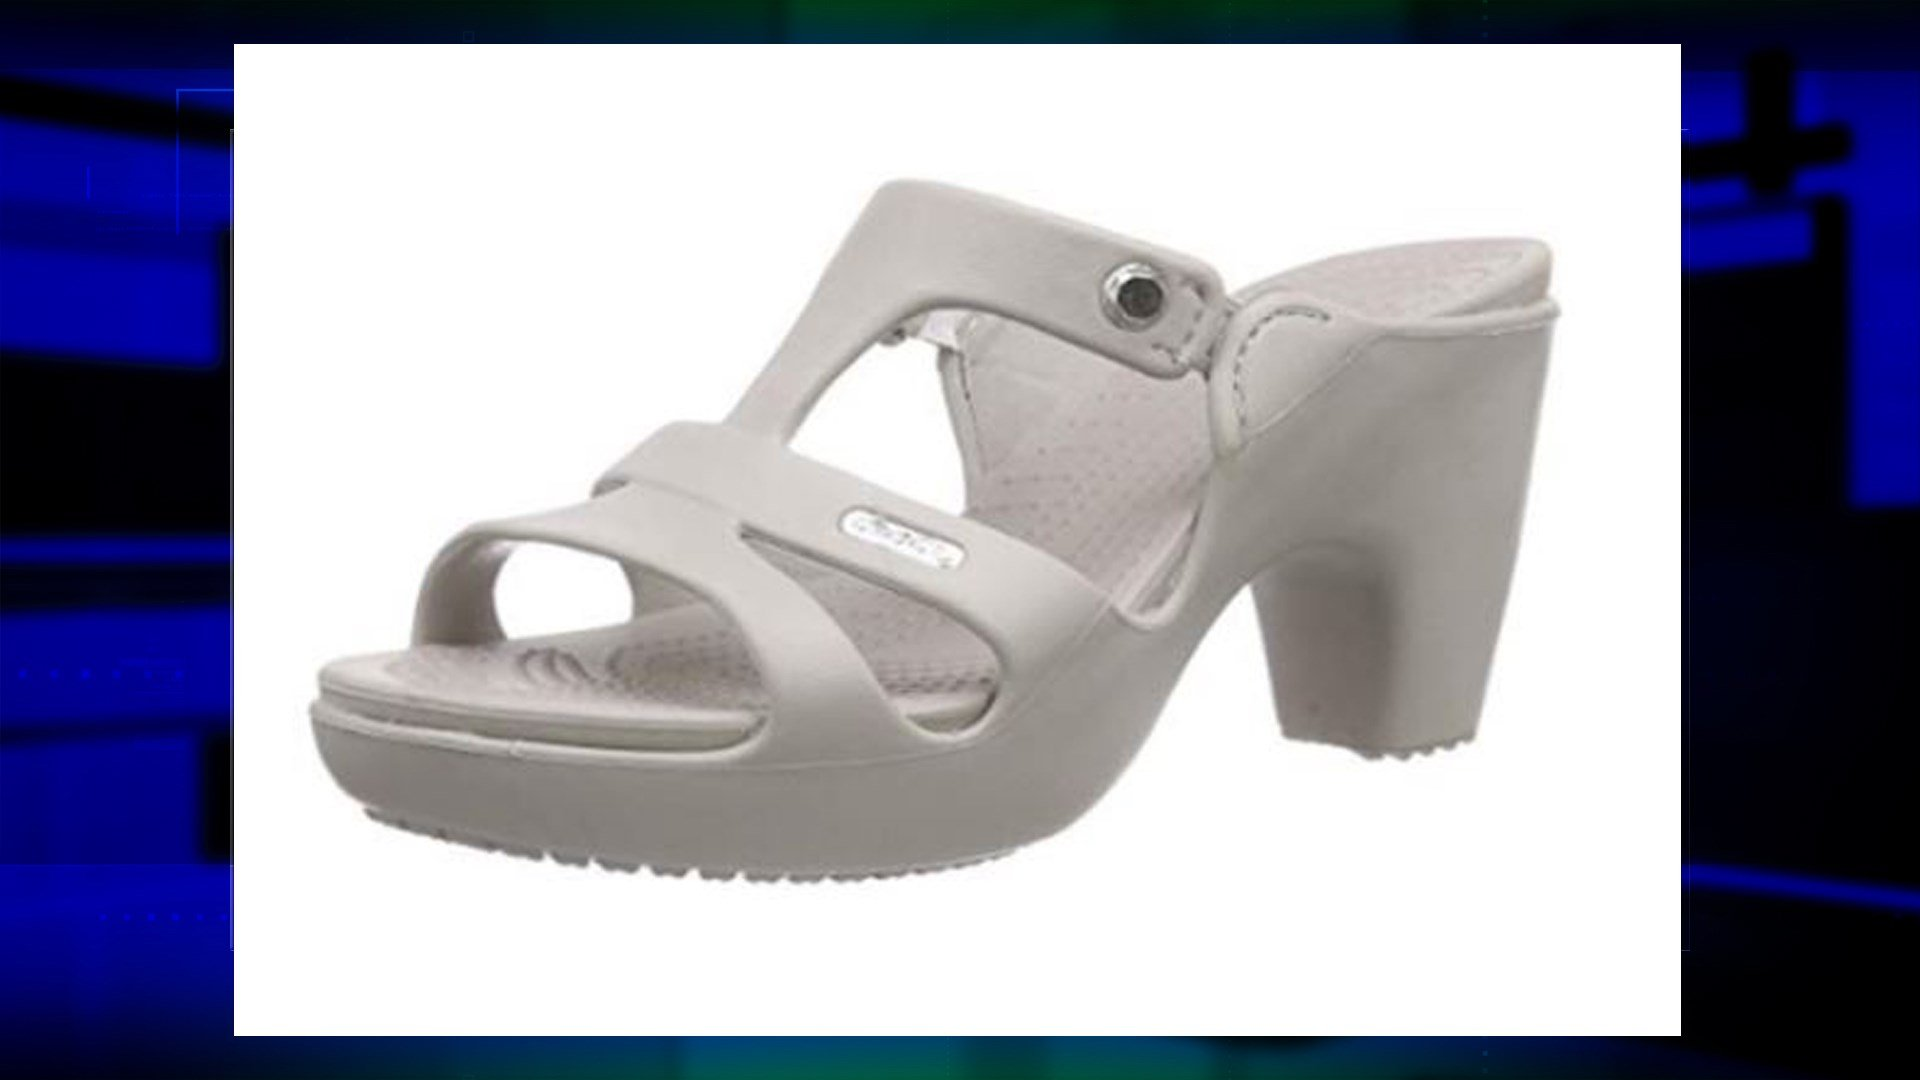 High-heel Crocs shoes are selling out, prompting questions of wh ...